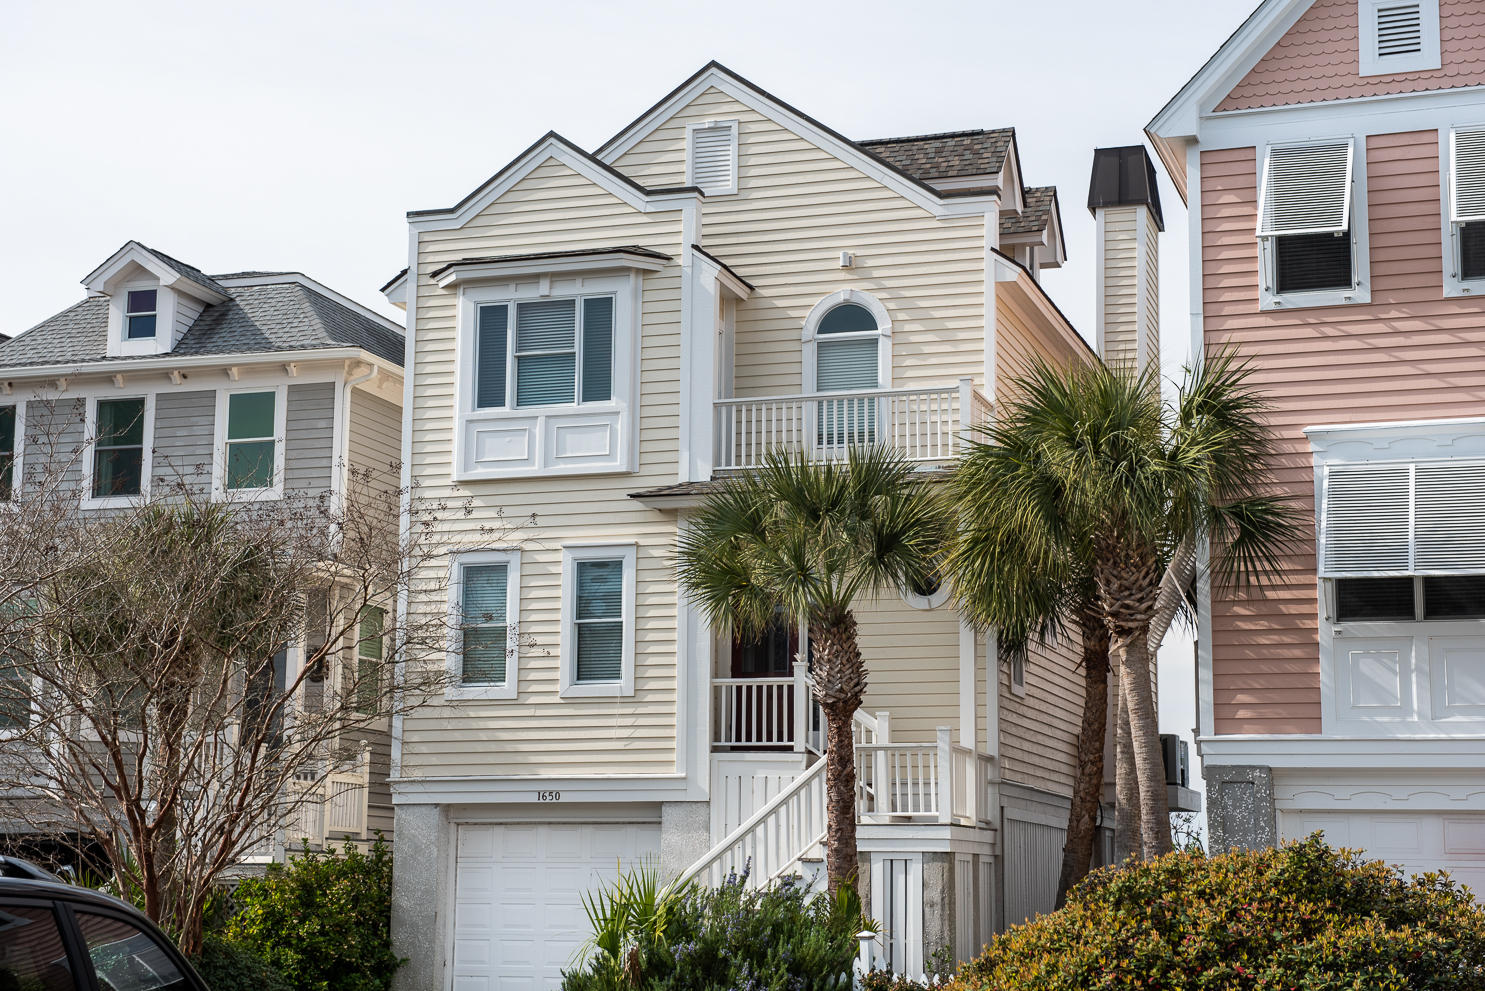 Tolers Cove Homes For Sale - B-4 & B-5 Tolers Cove Marina 70ft + Home, Mount Pleasant, SC - 45